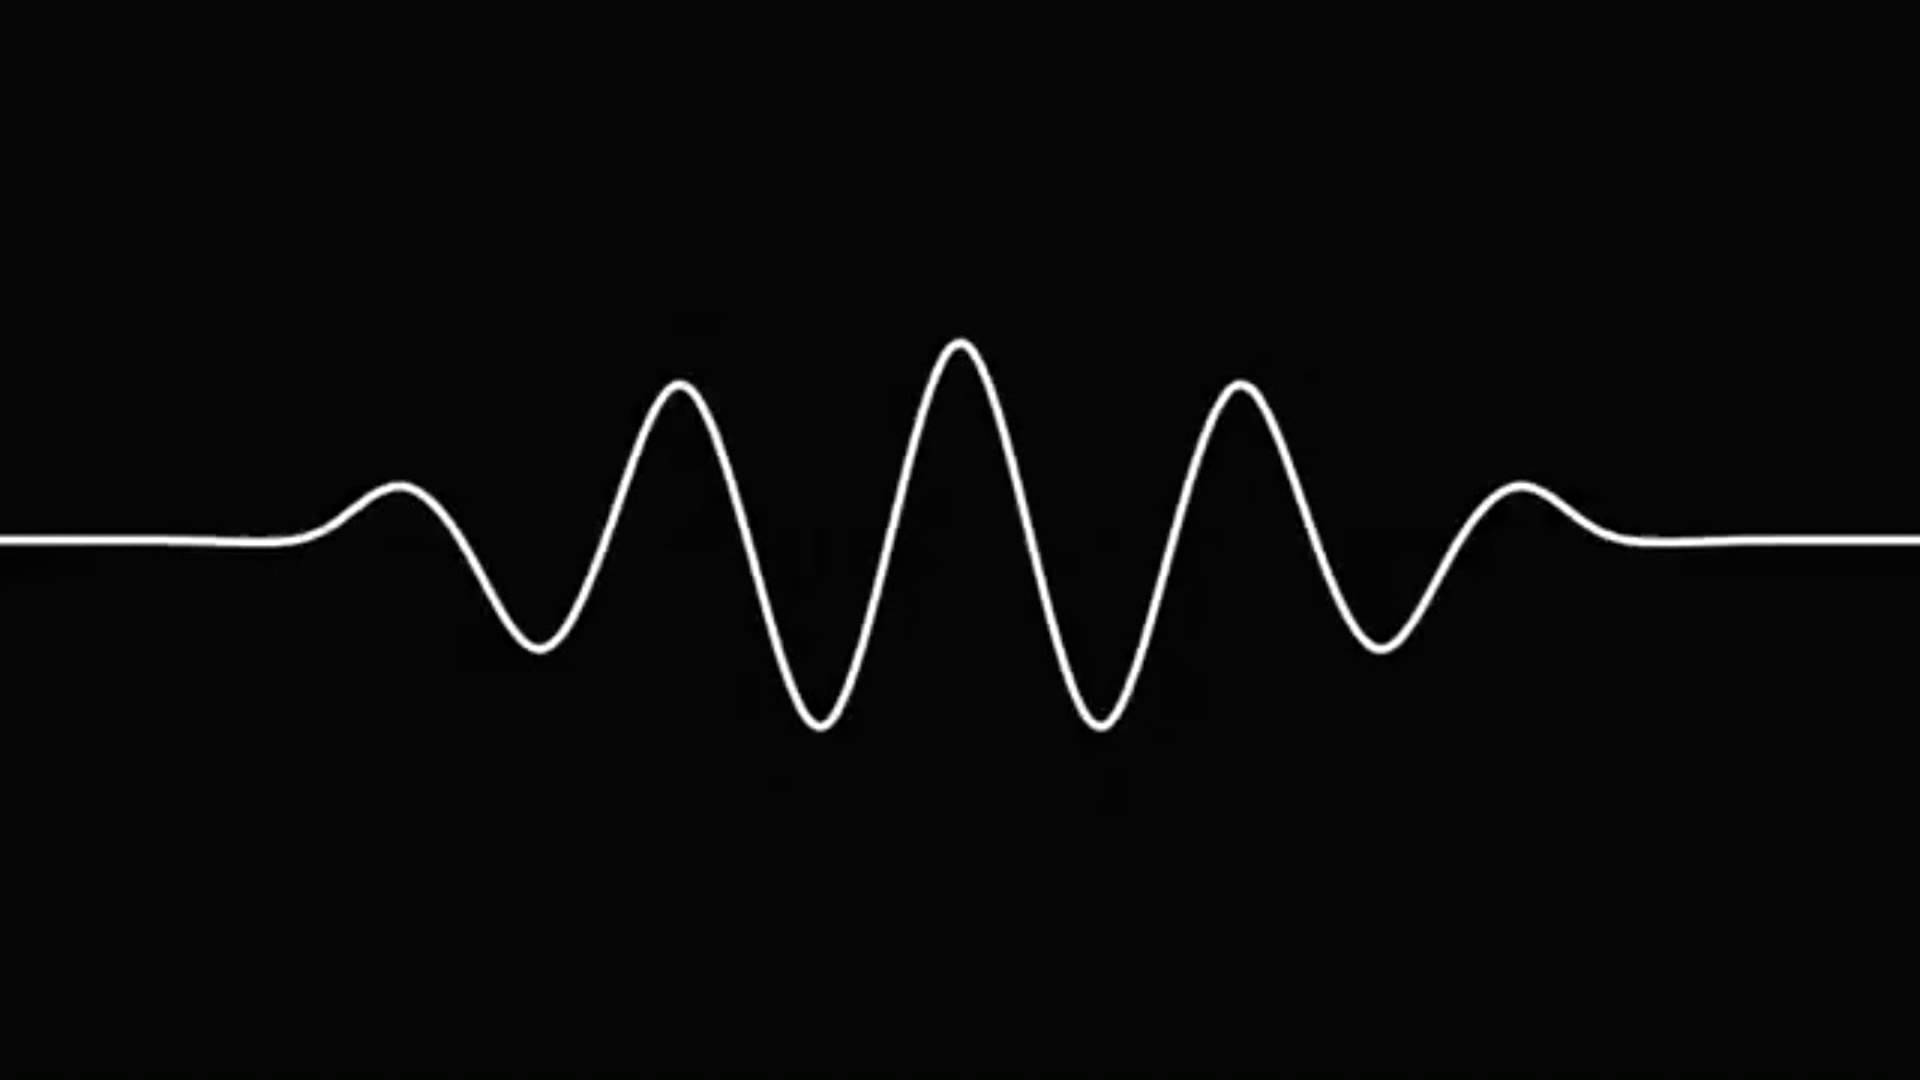 Arctic Monkeys Wallpaper - WallpaperSafari